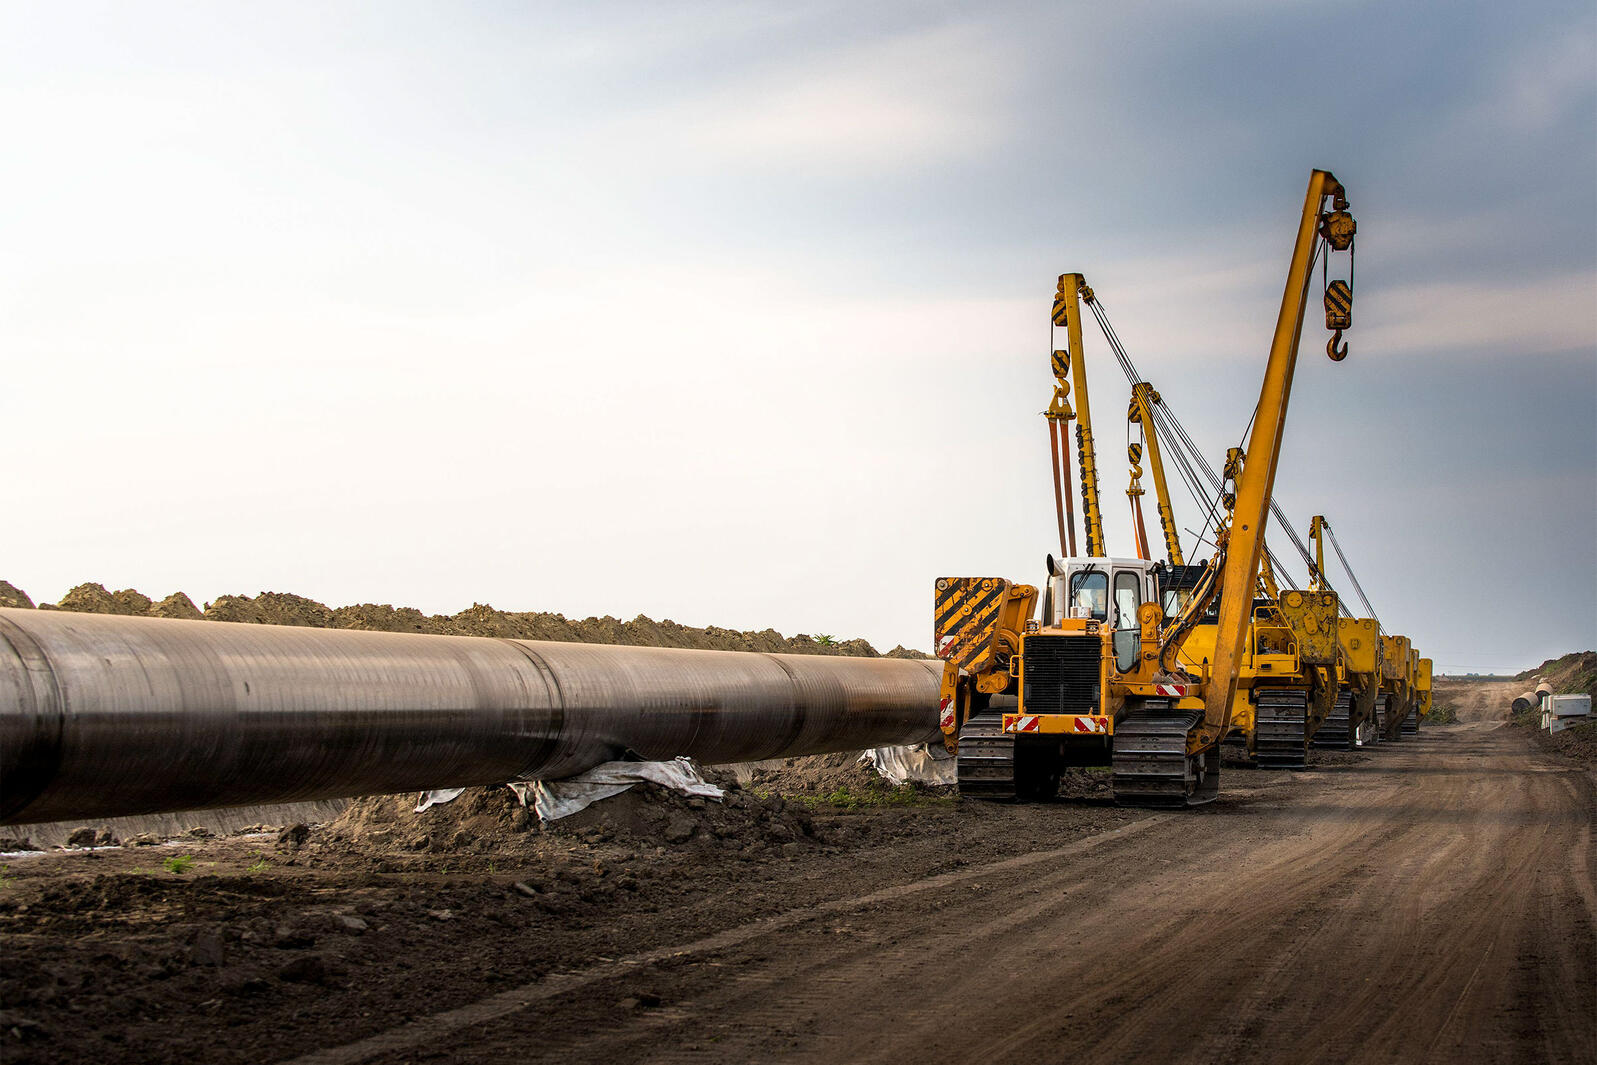 Oil pipeline being constructed. Dusan Kostic/Alamy